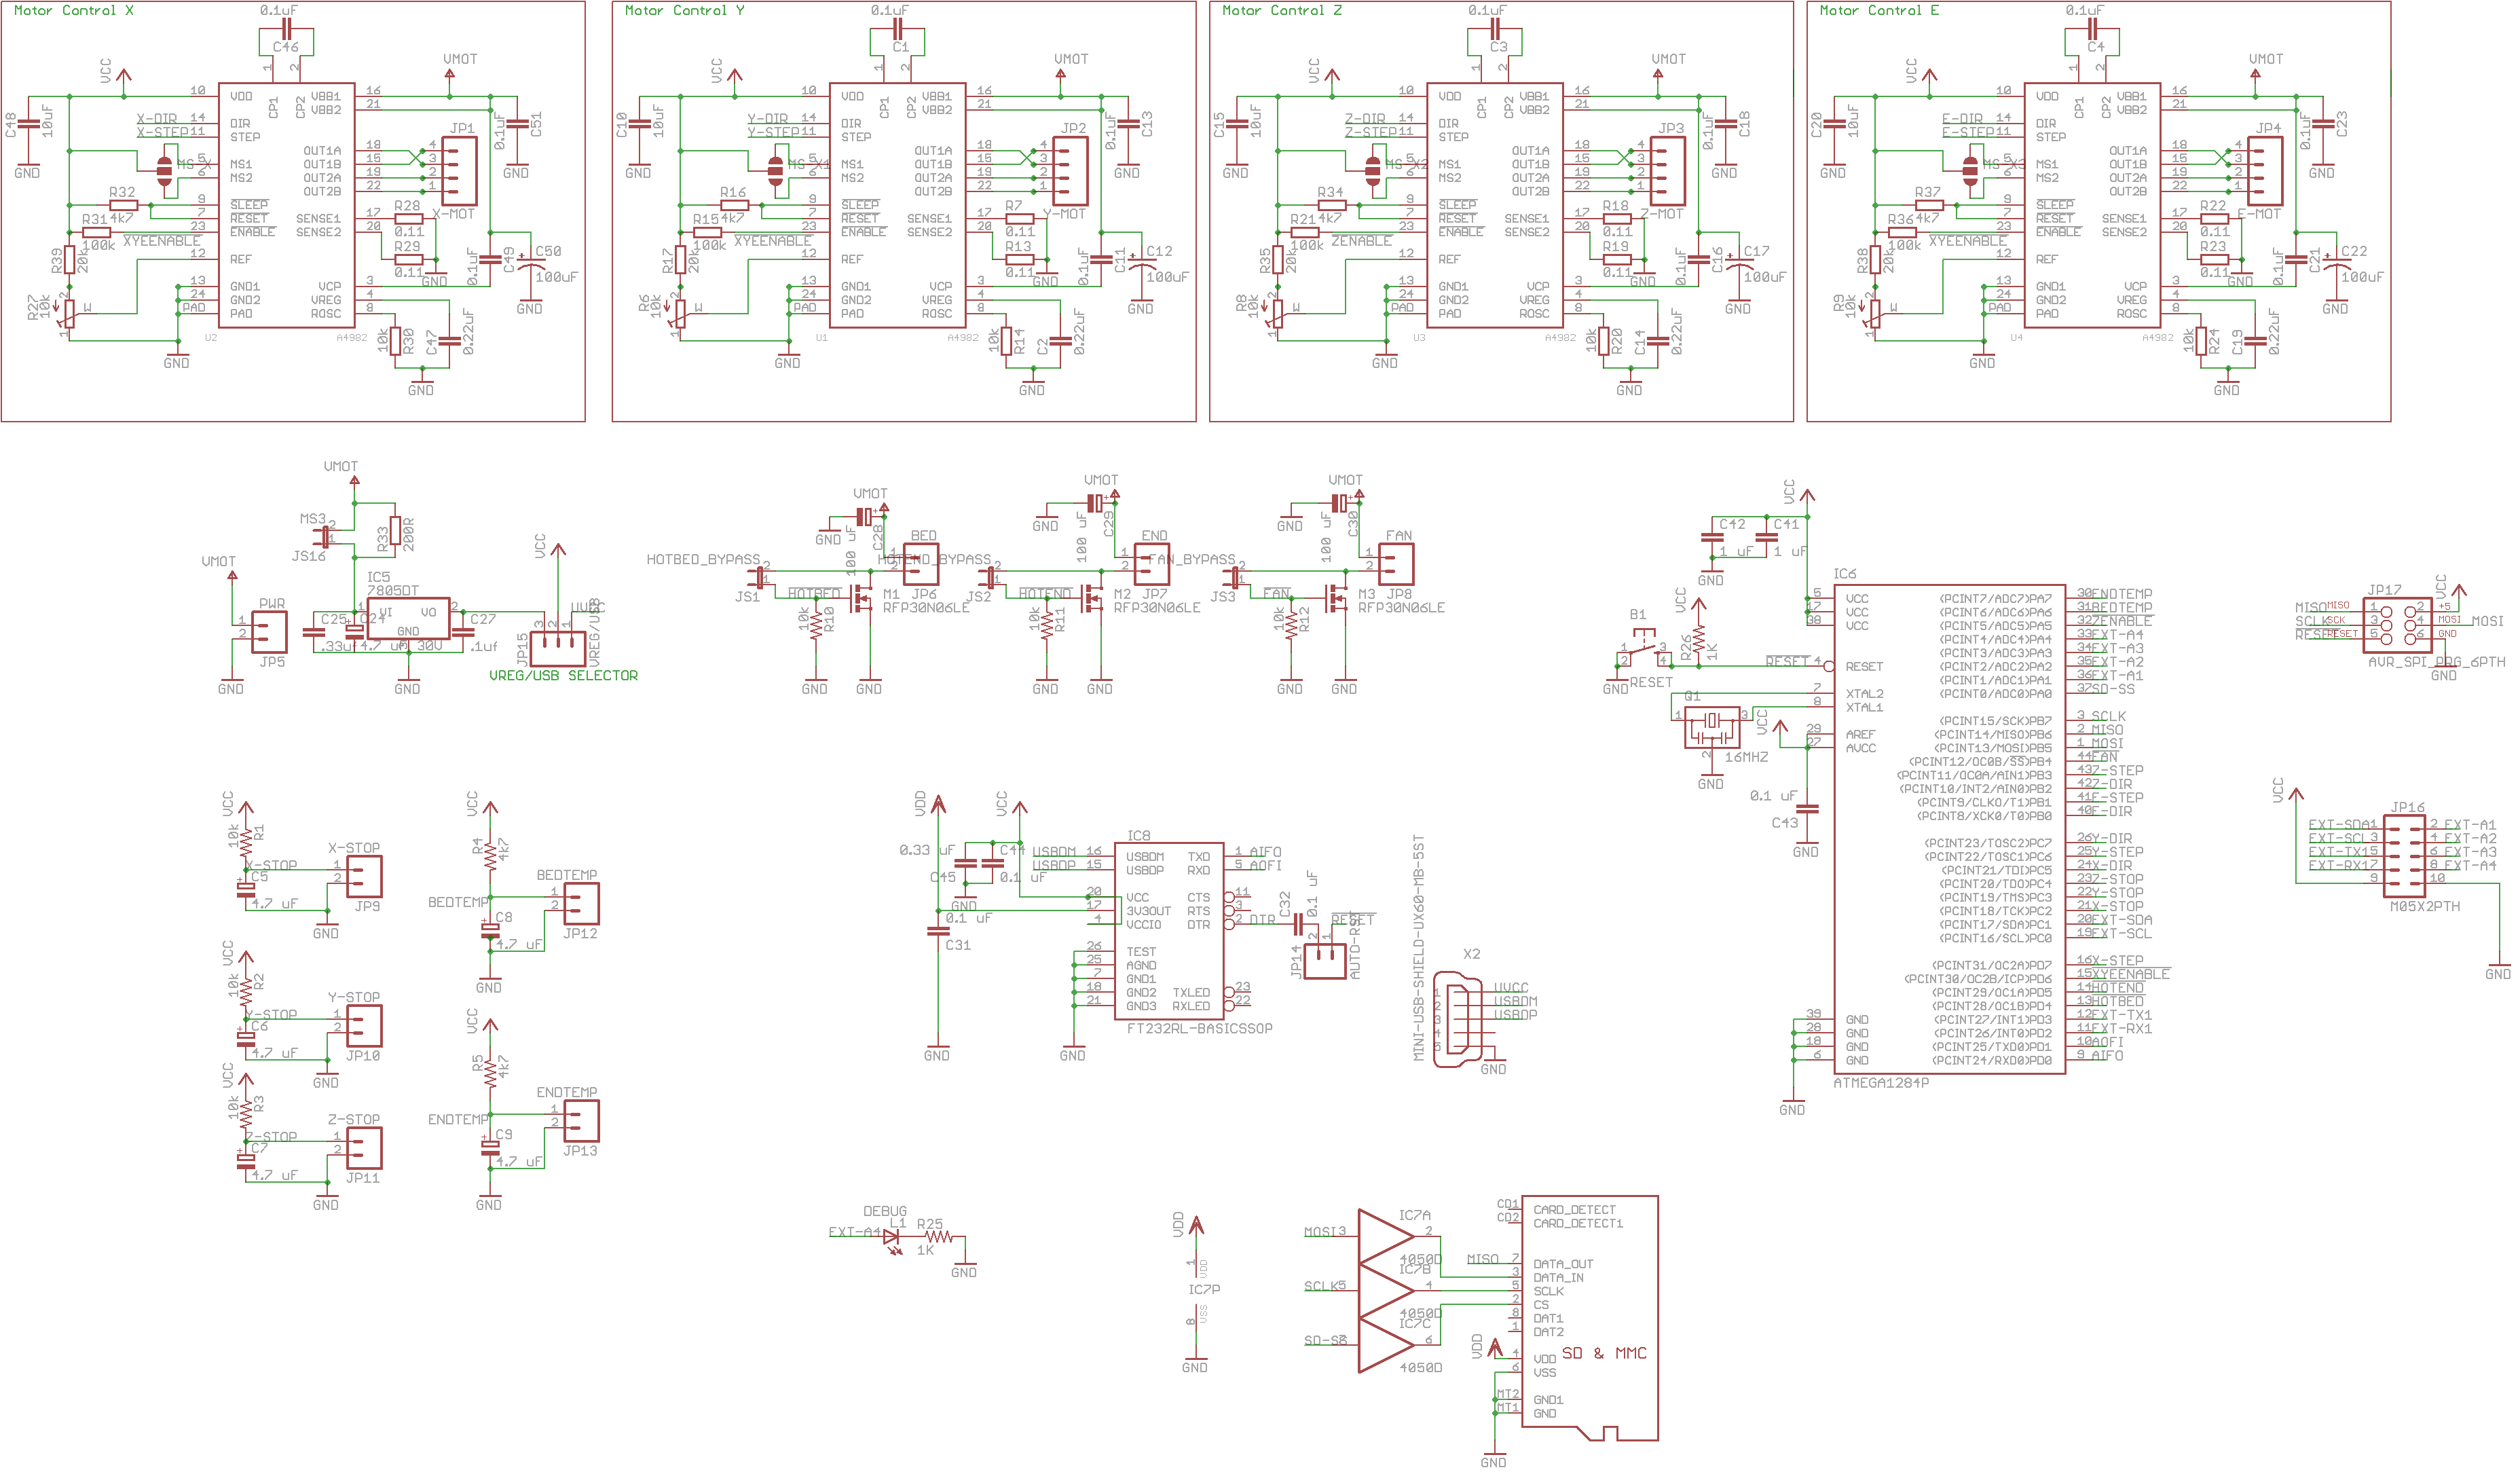 Melzi circuit updated marlin customized for mendel90 Inductive Sensor Schematic at crackthecode.co